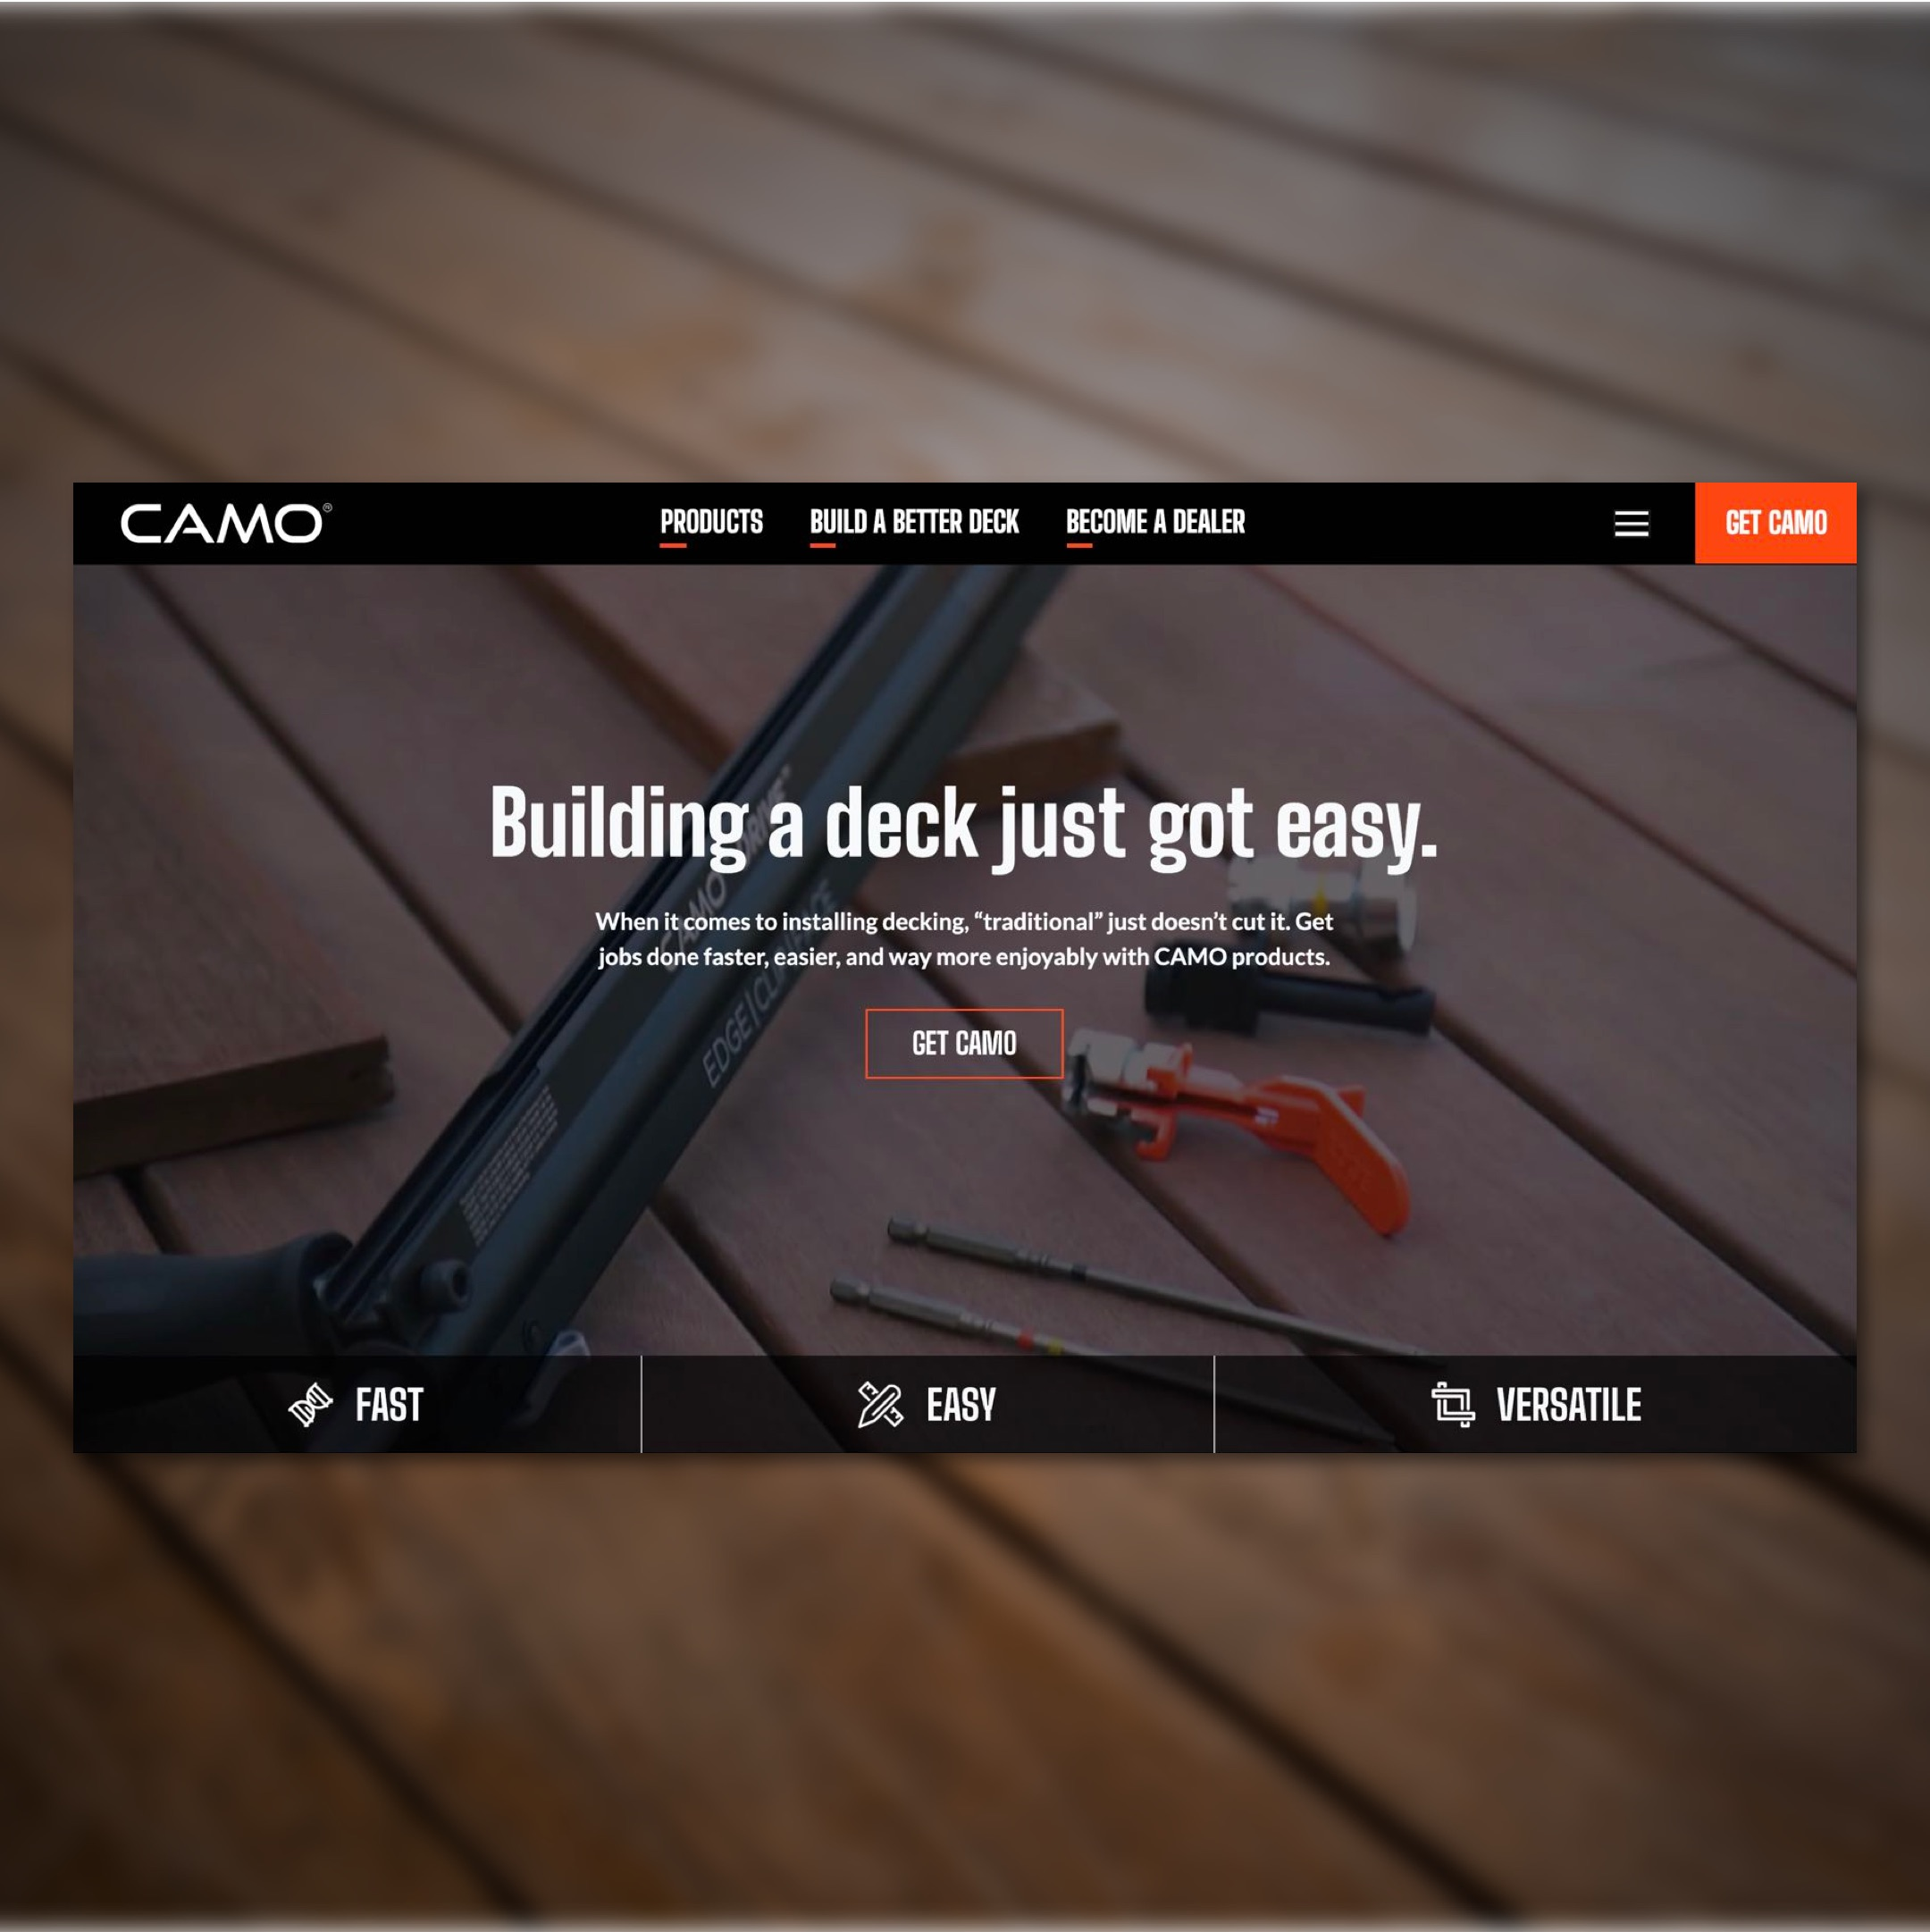 Image of CAMO homepage on top of blurry background texture of decking.